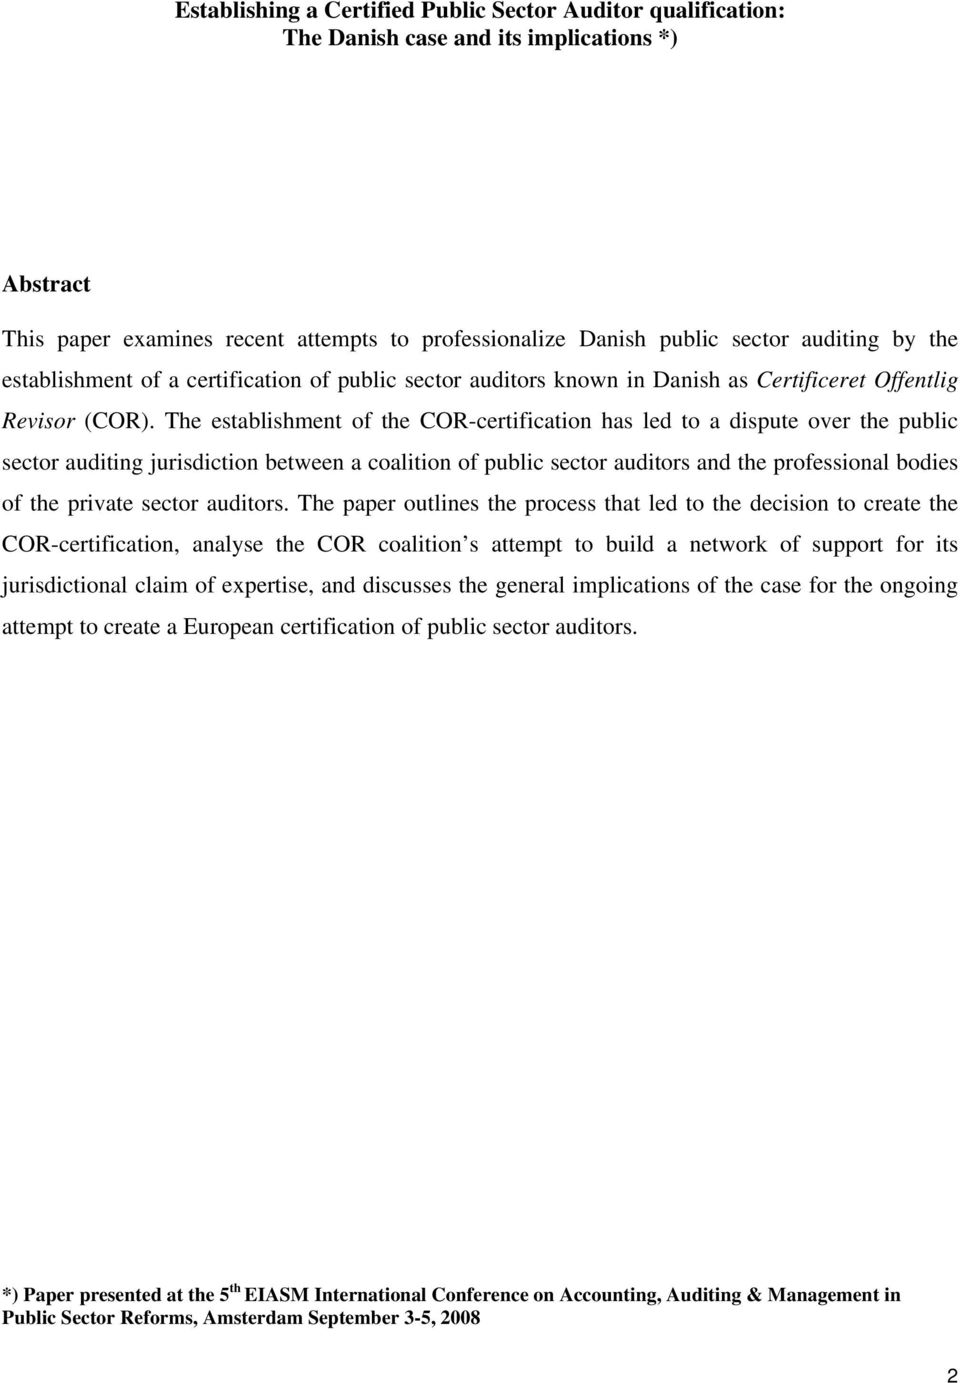 The establishment of the COR-certification has led to a dispute over the public sector auditing jurisdiction between a coalition of public sector auditors and the professional bodies of the private